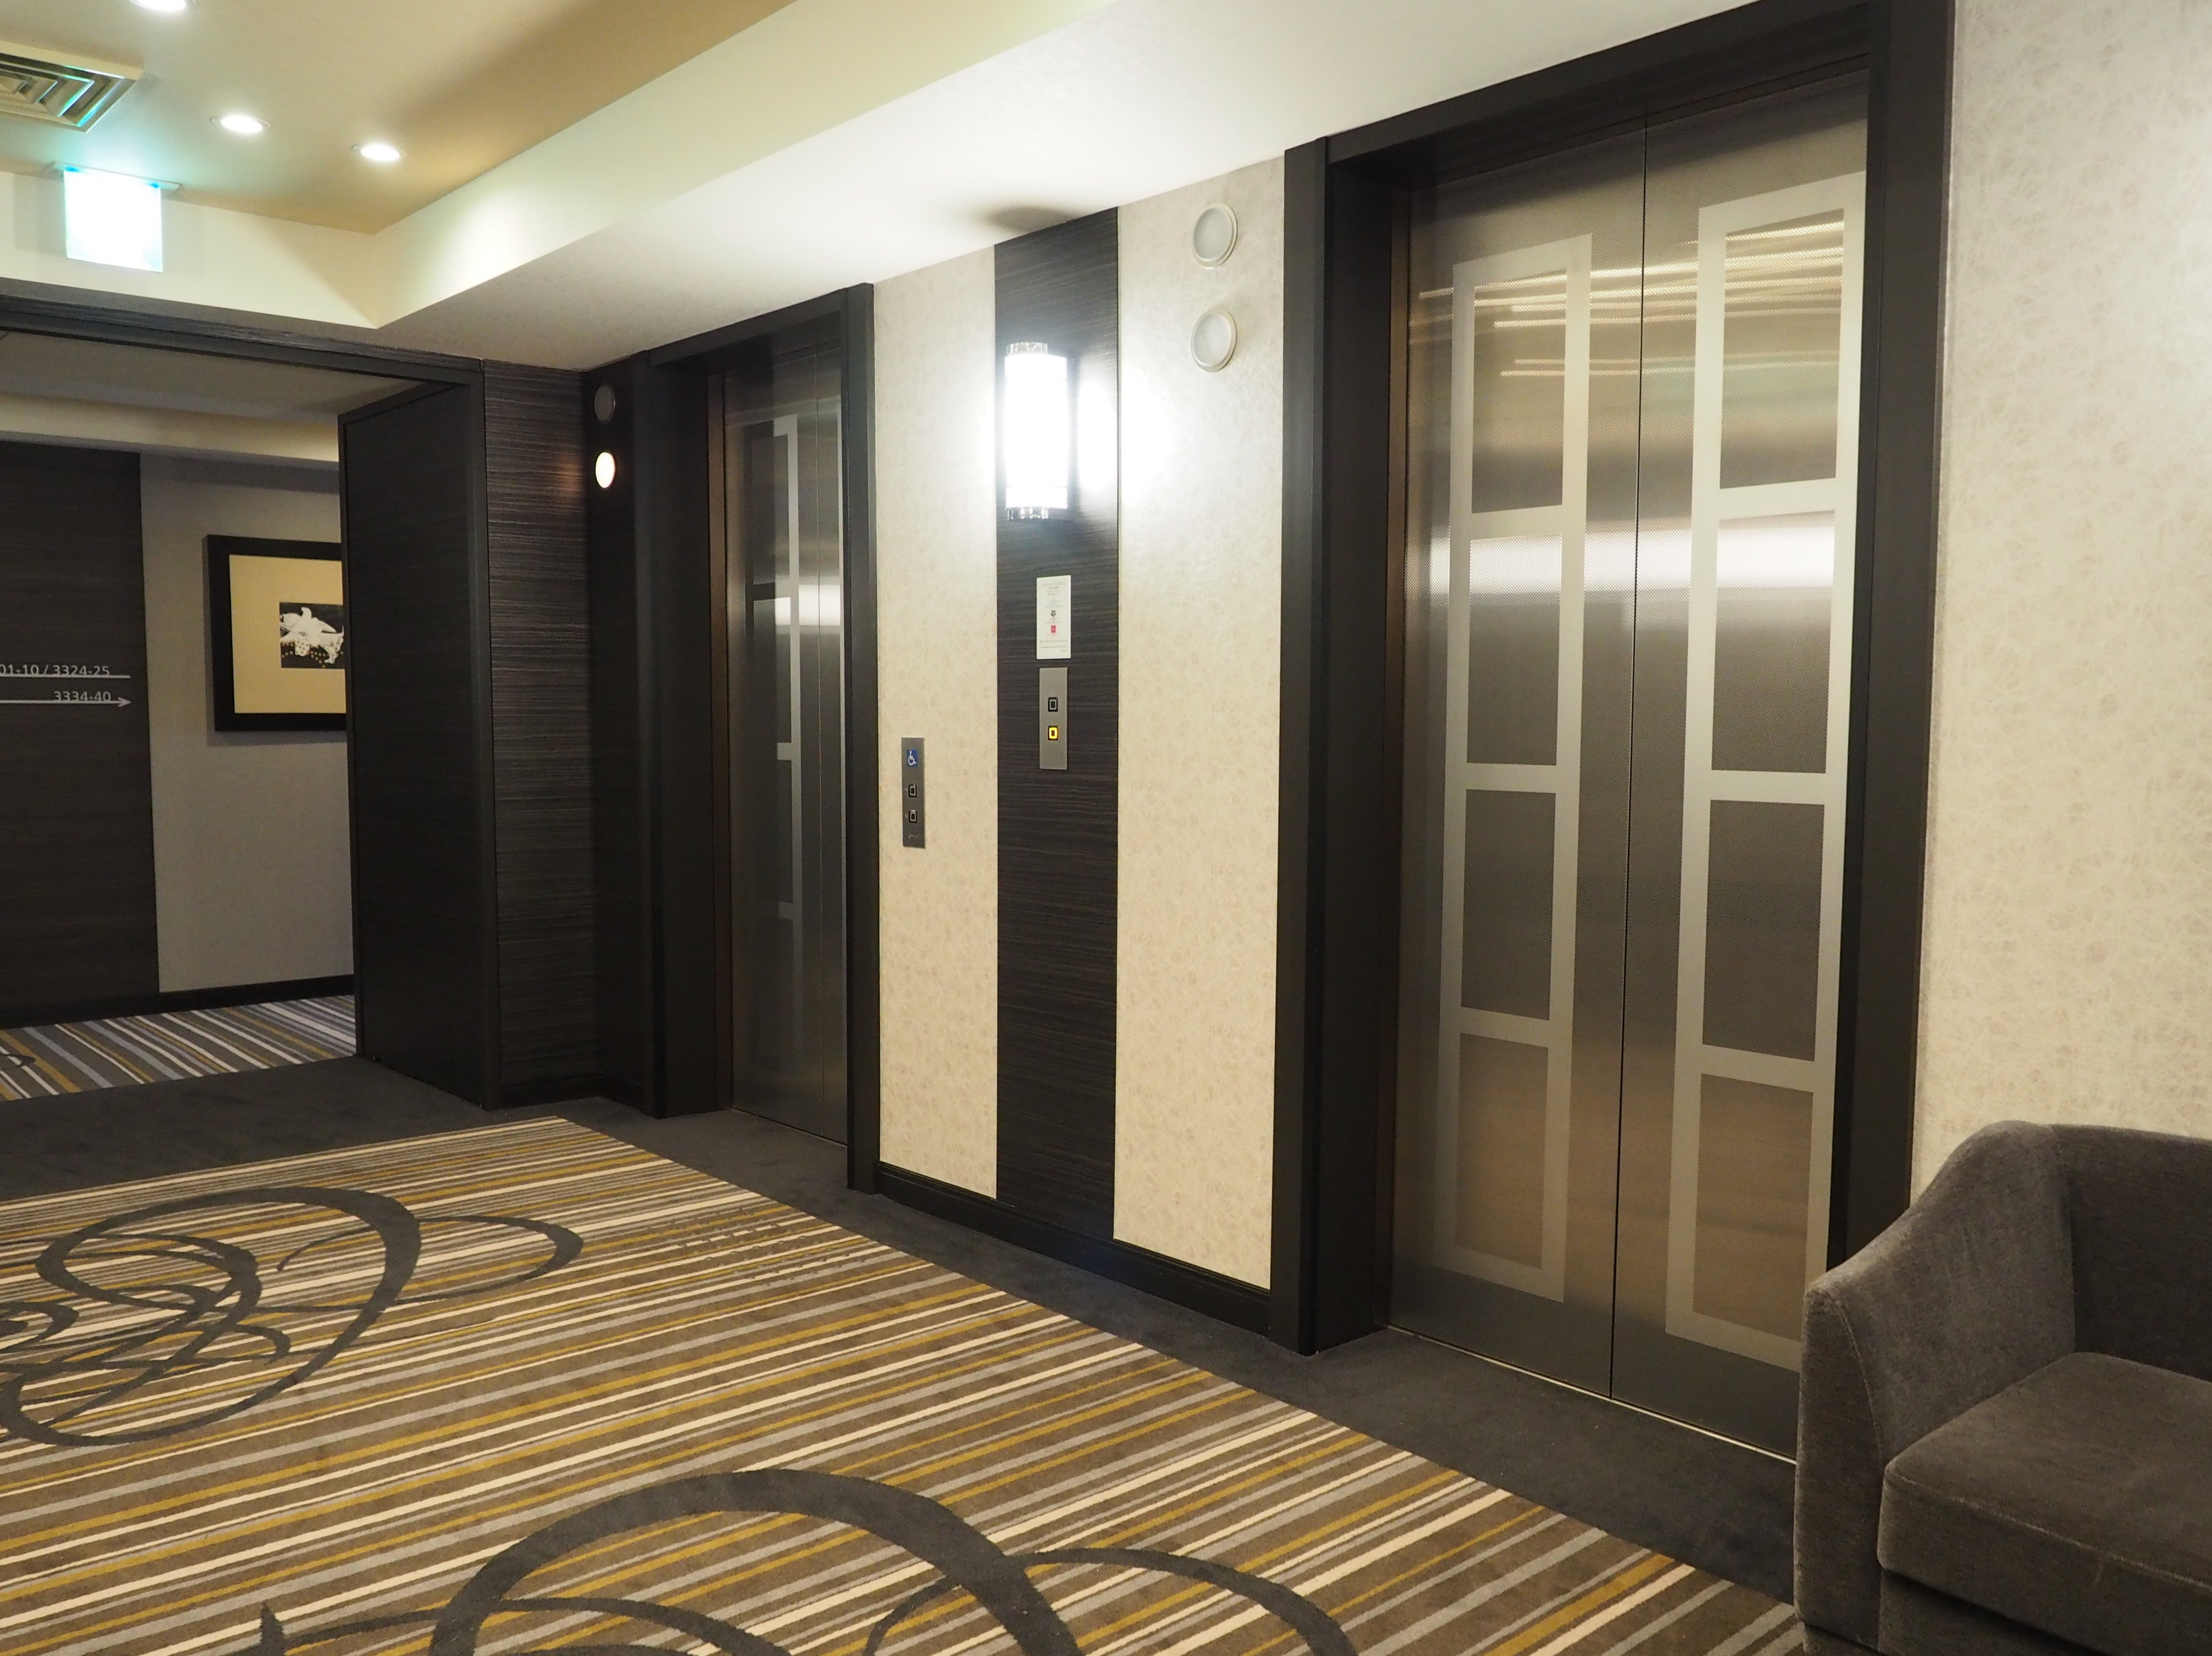 Elevator hall of the 33th floor with chic design, one of the executive floors